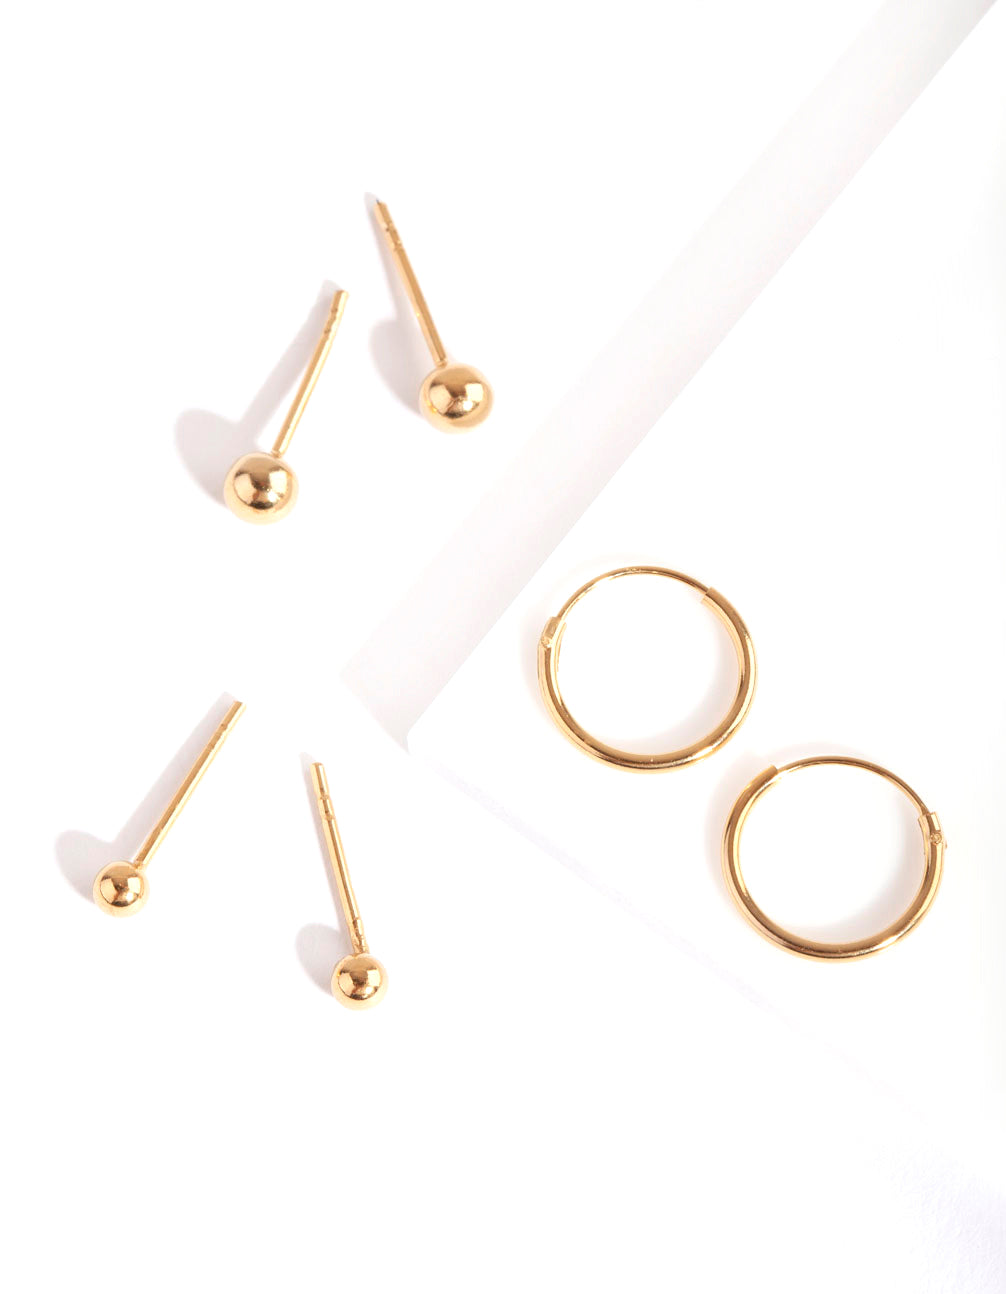 Gold Plated Sterling Silver Mini Studs & Hoop Earring Pack